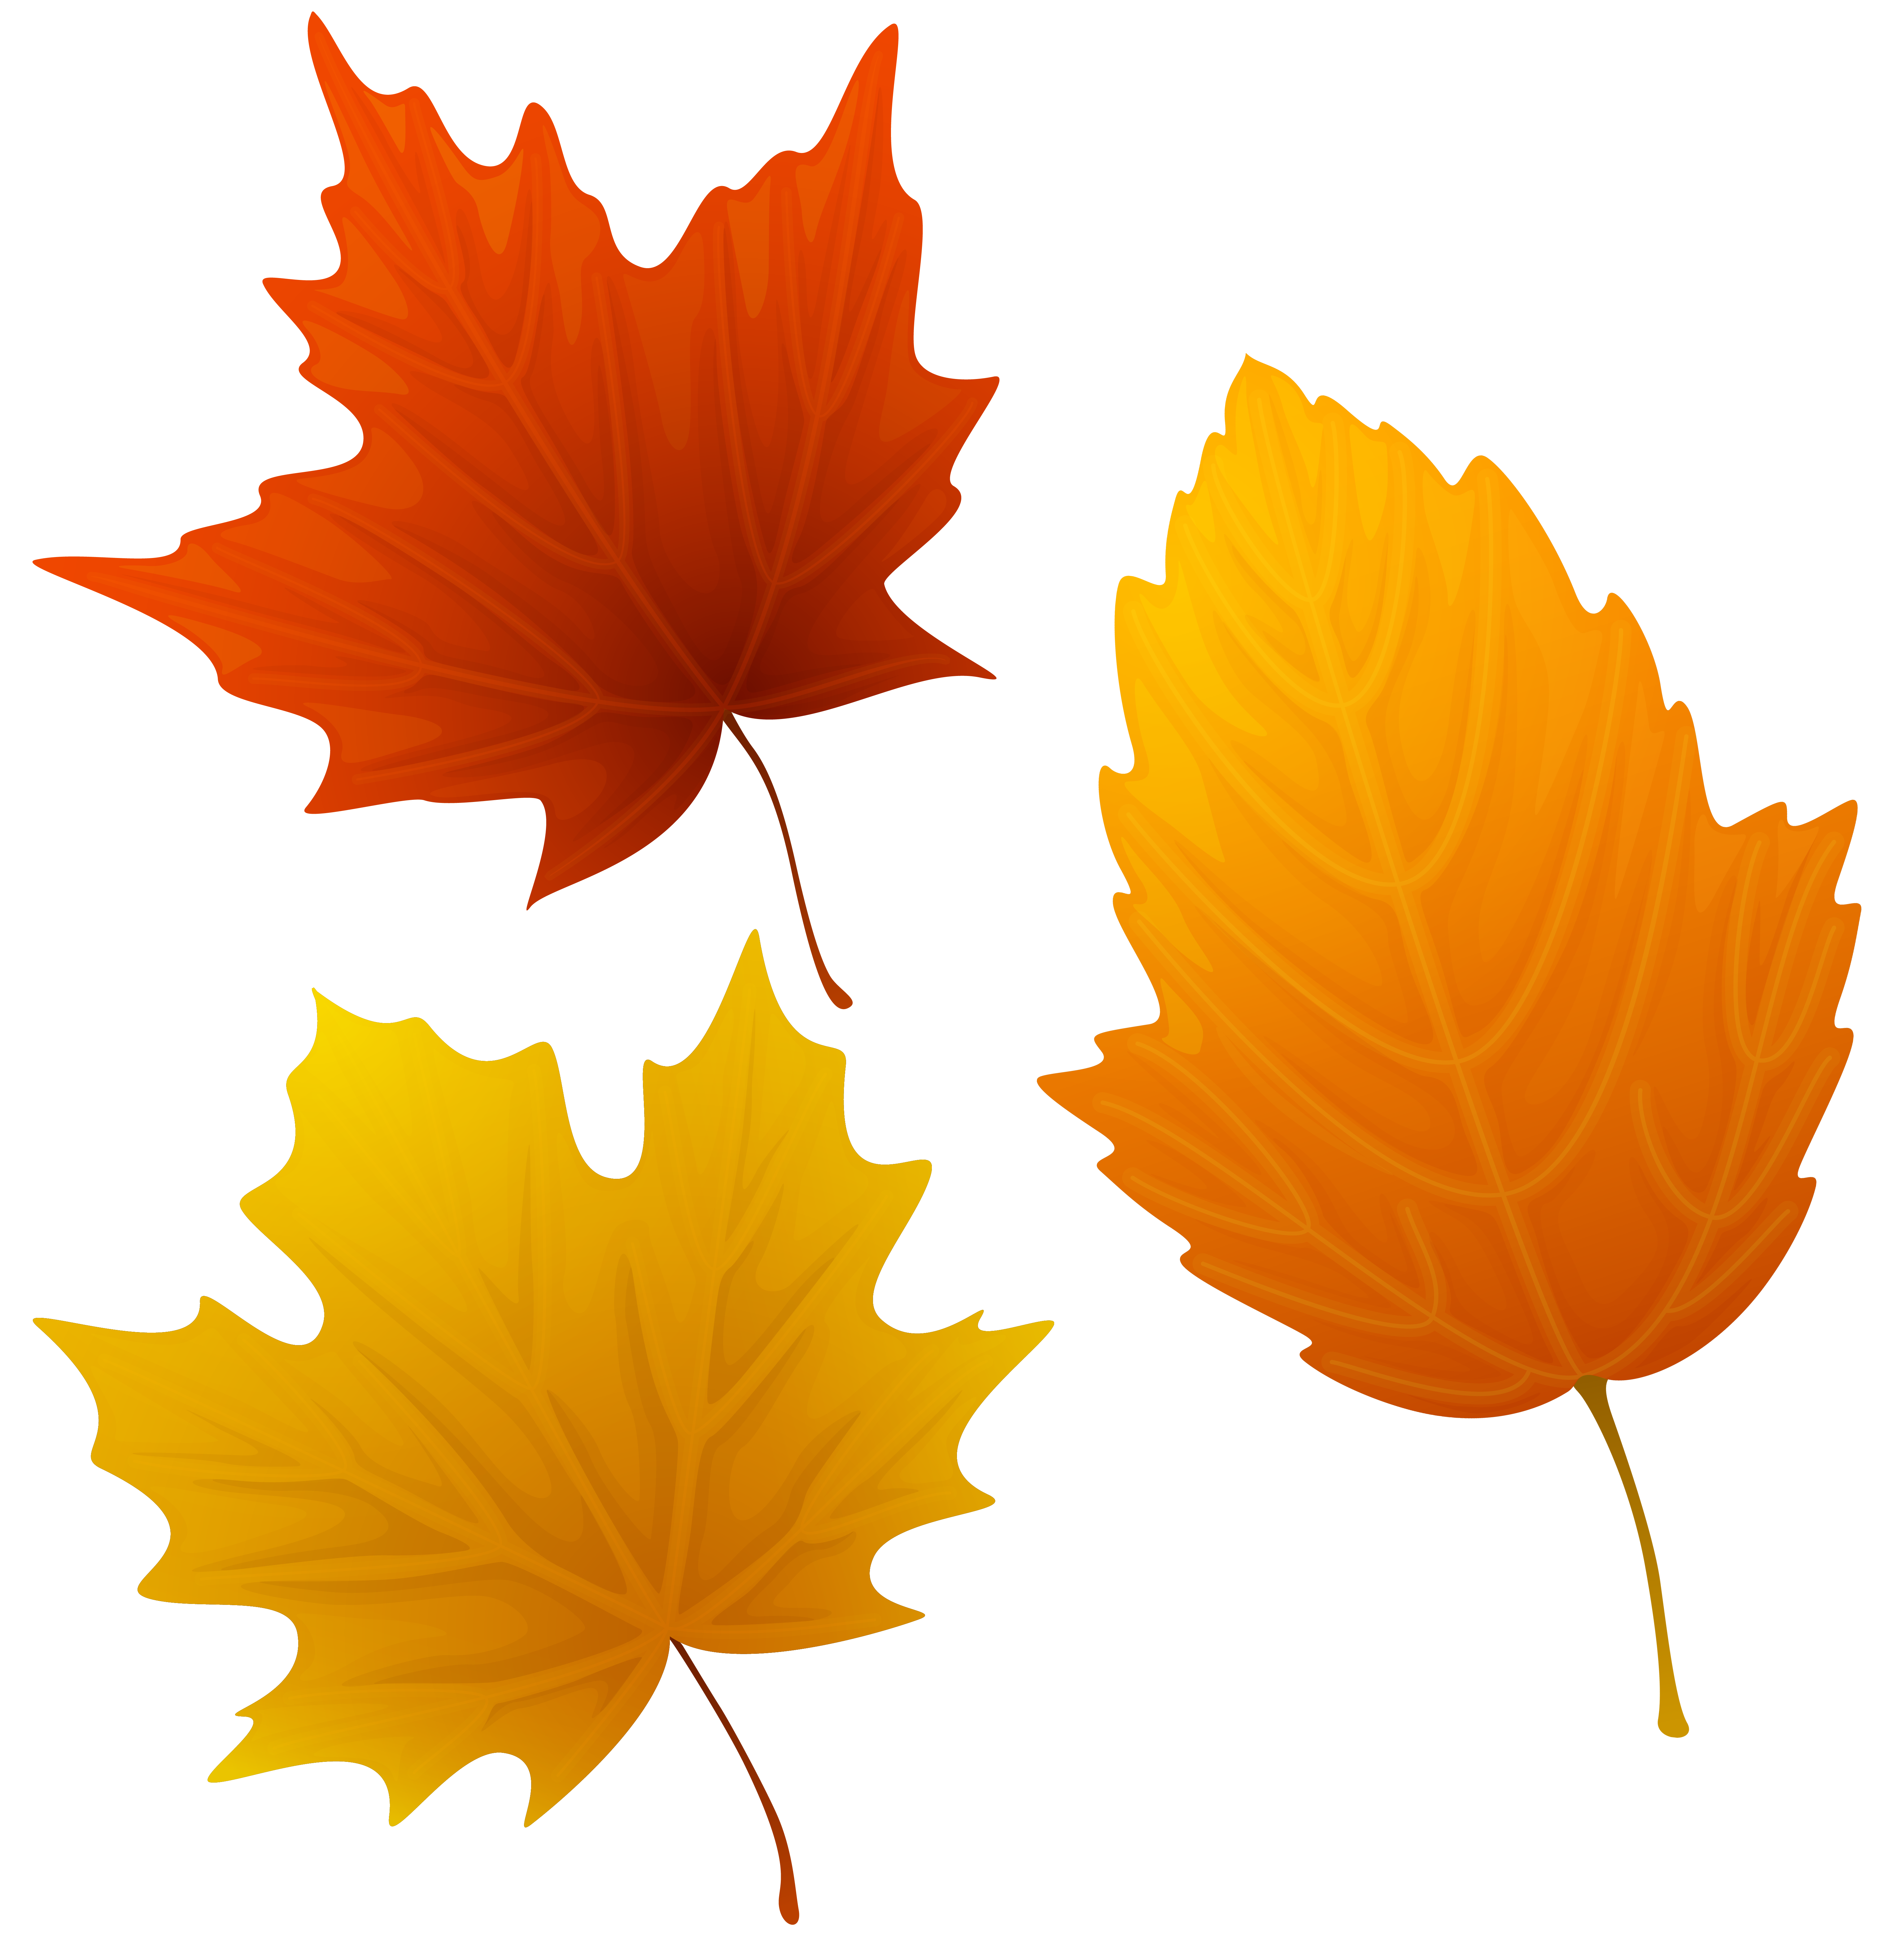 Set of Autumn Leaves Clipart PNG Image.